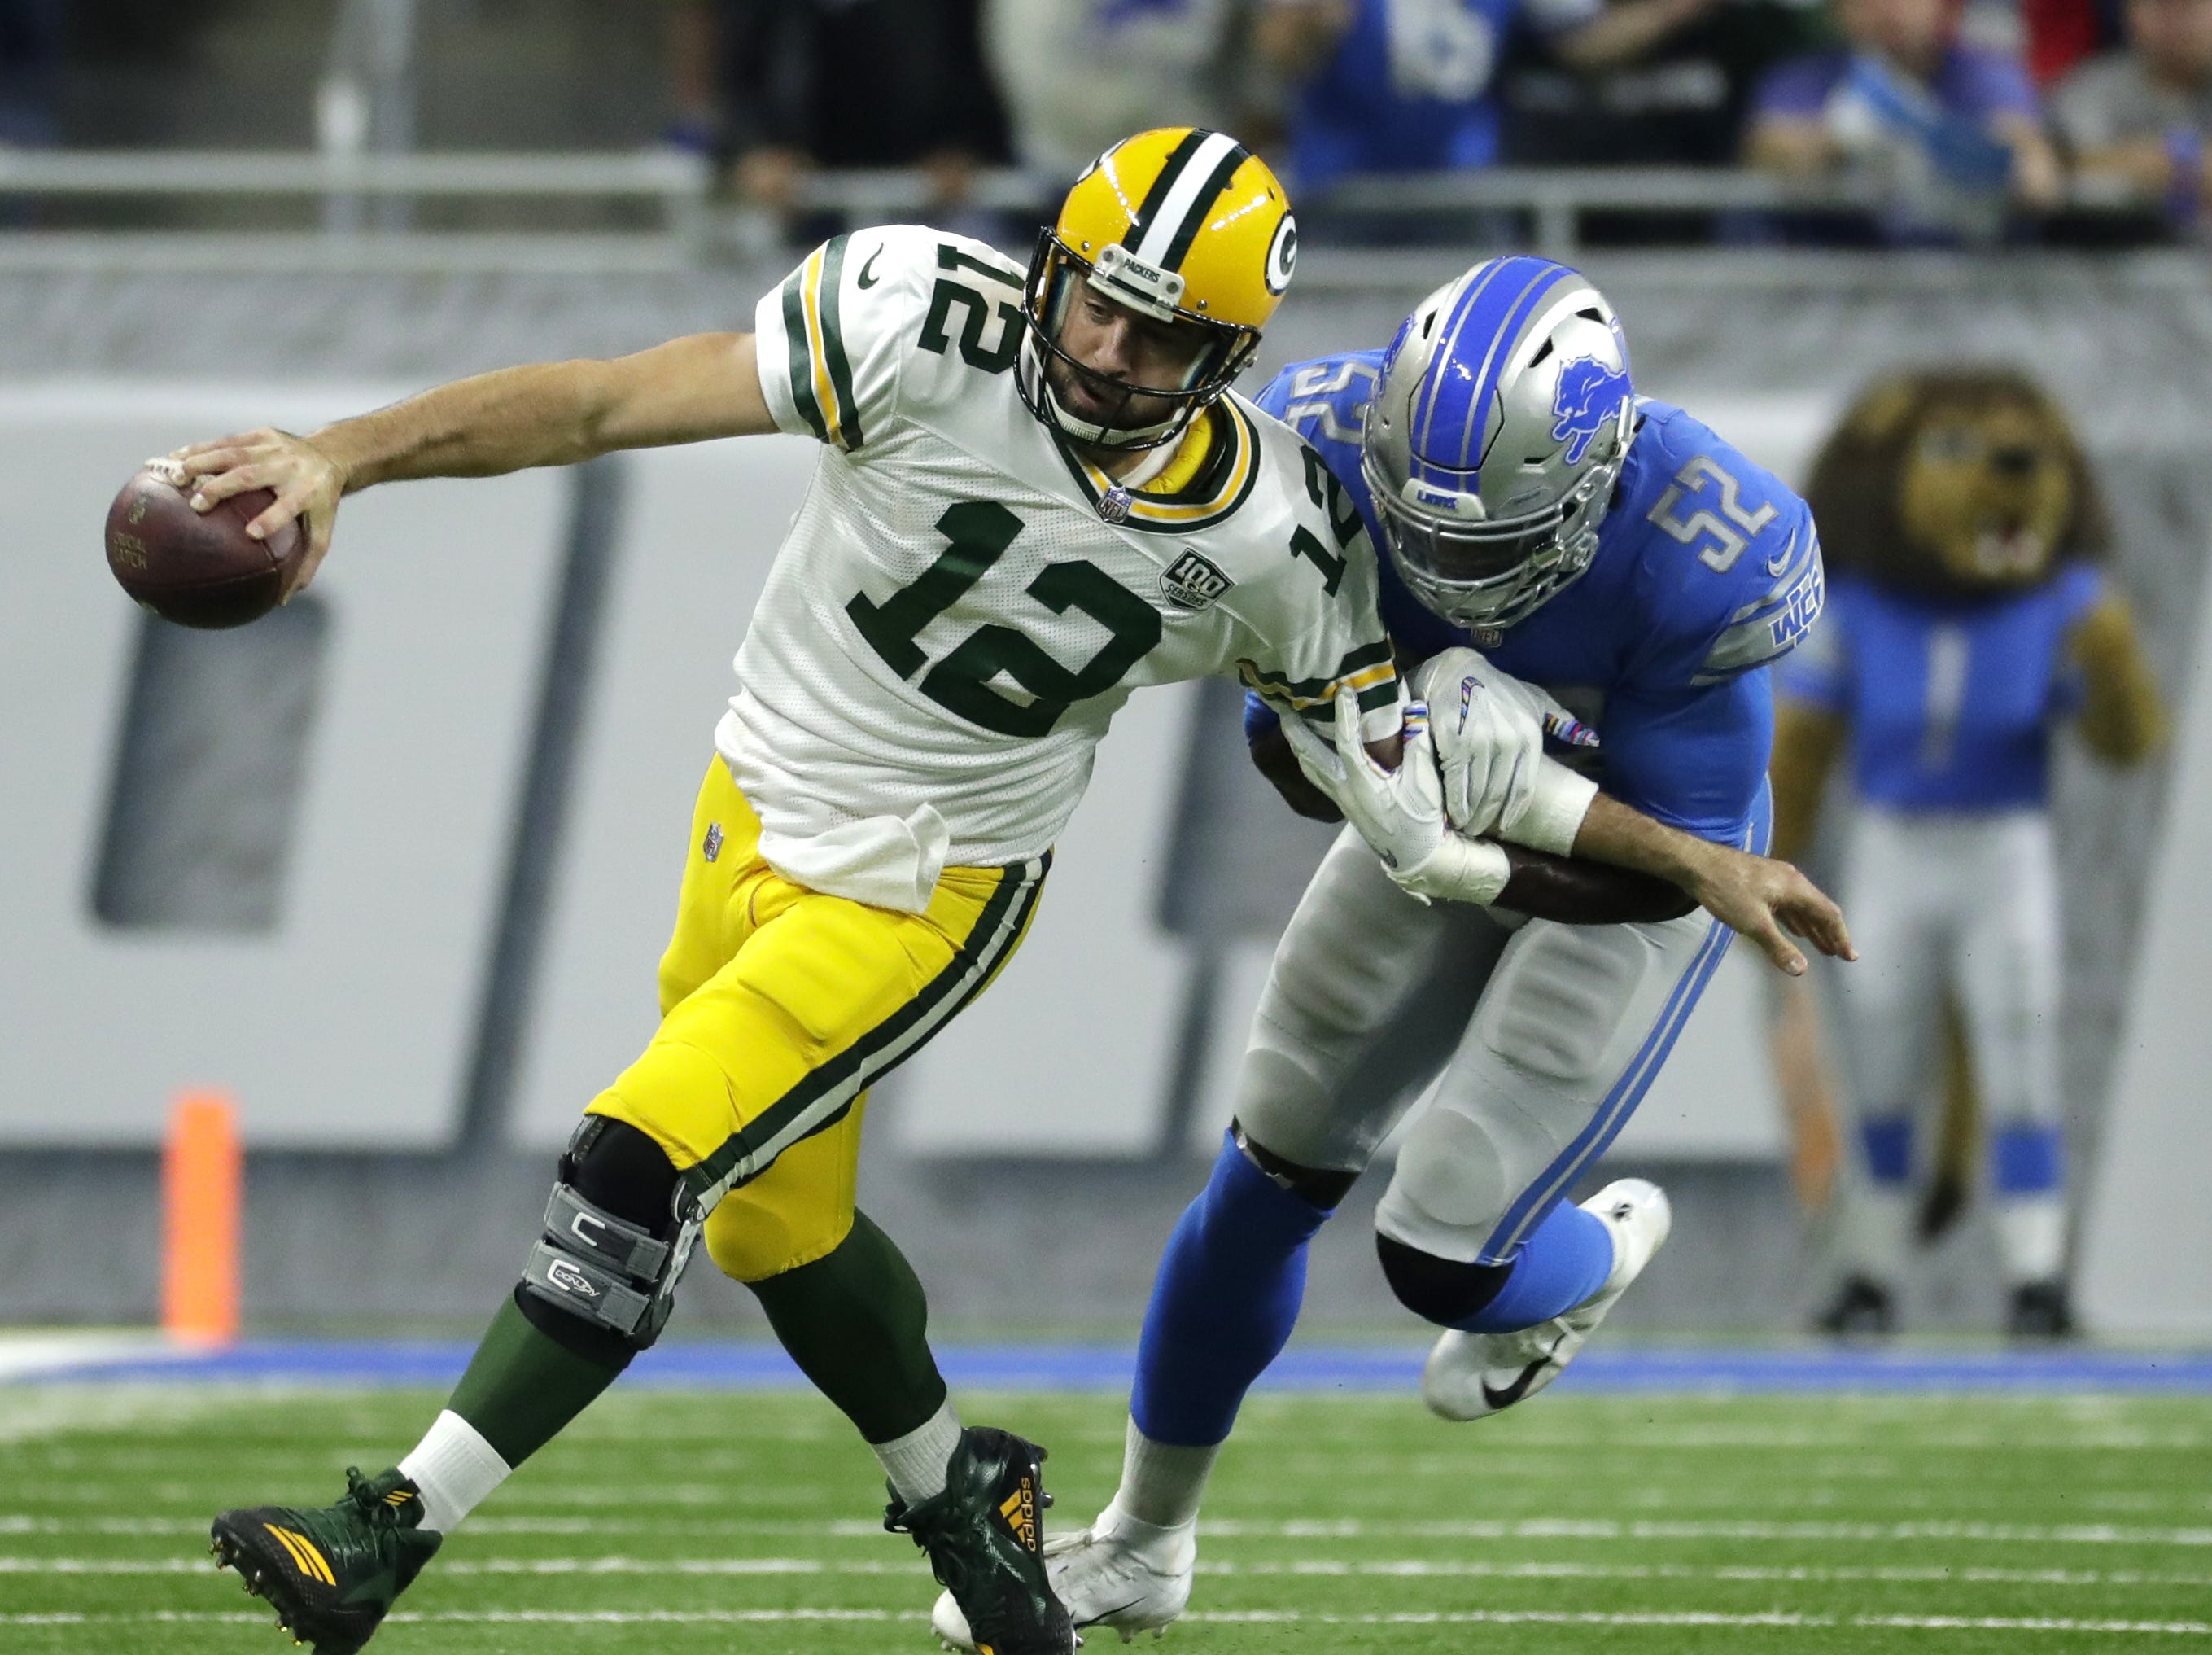 Green Bay Packers quarterback Aaron Rodgers (12) is sacked by Detroit Lions linebacker Christian Jones (52) during the Green Bay Packers vs. Detroit Lions NFL game at Ford Field, Detroit, Sunday, October 7, 2018.